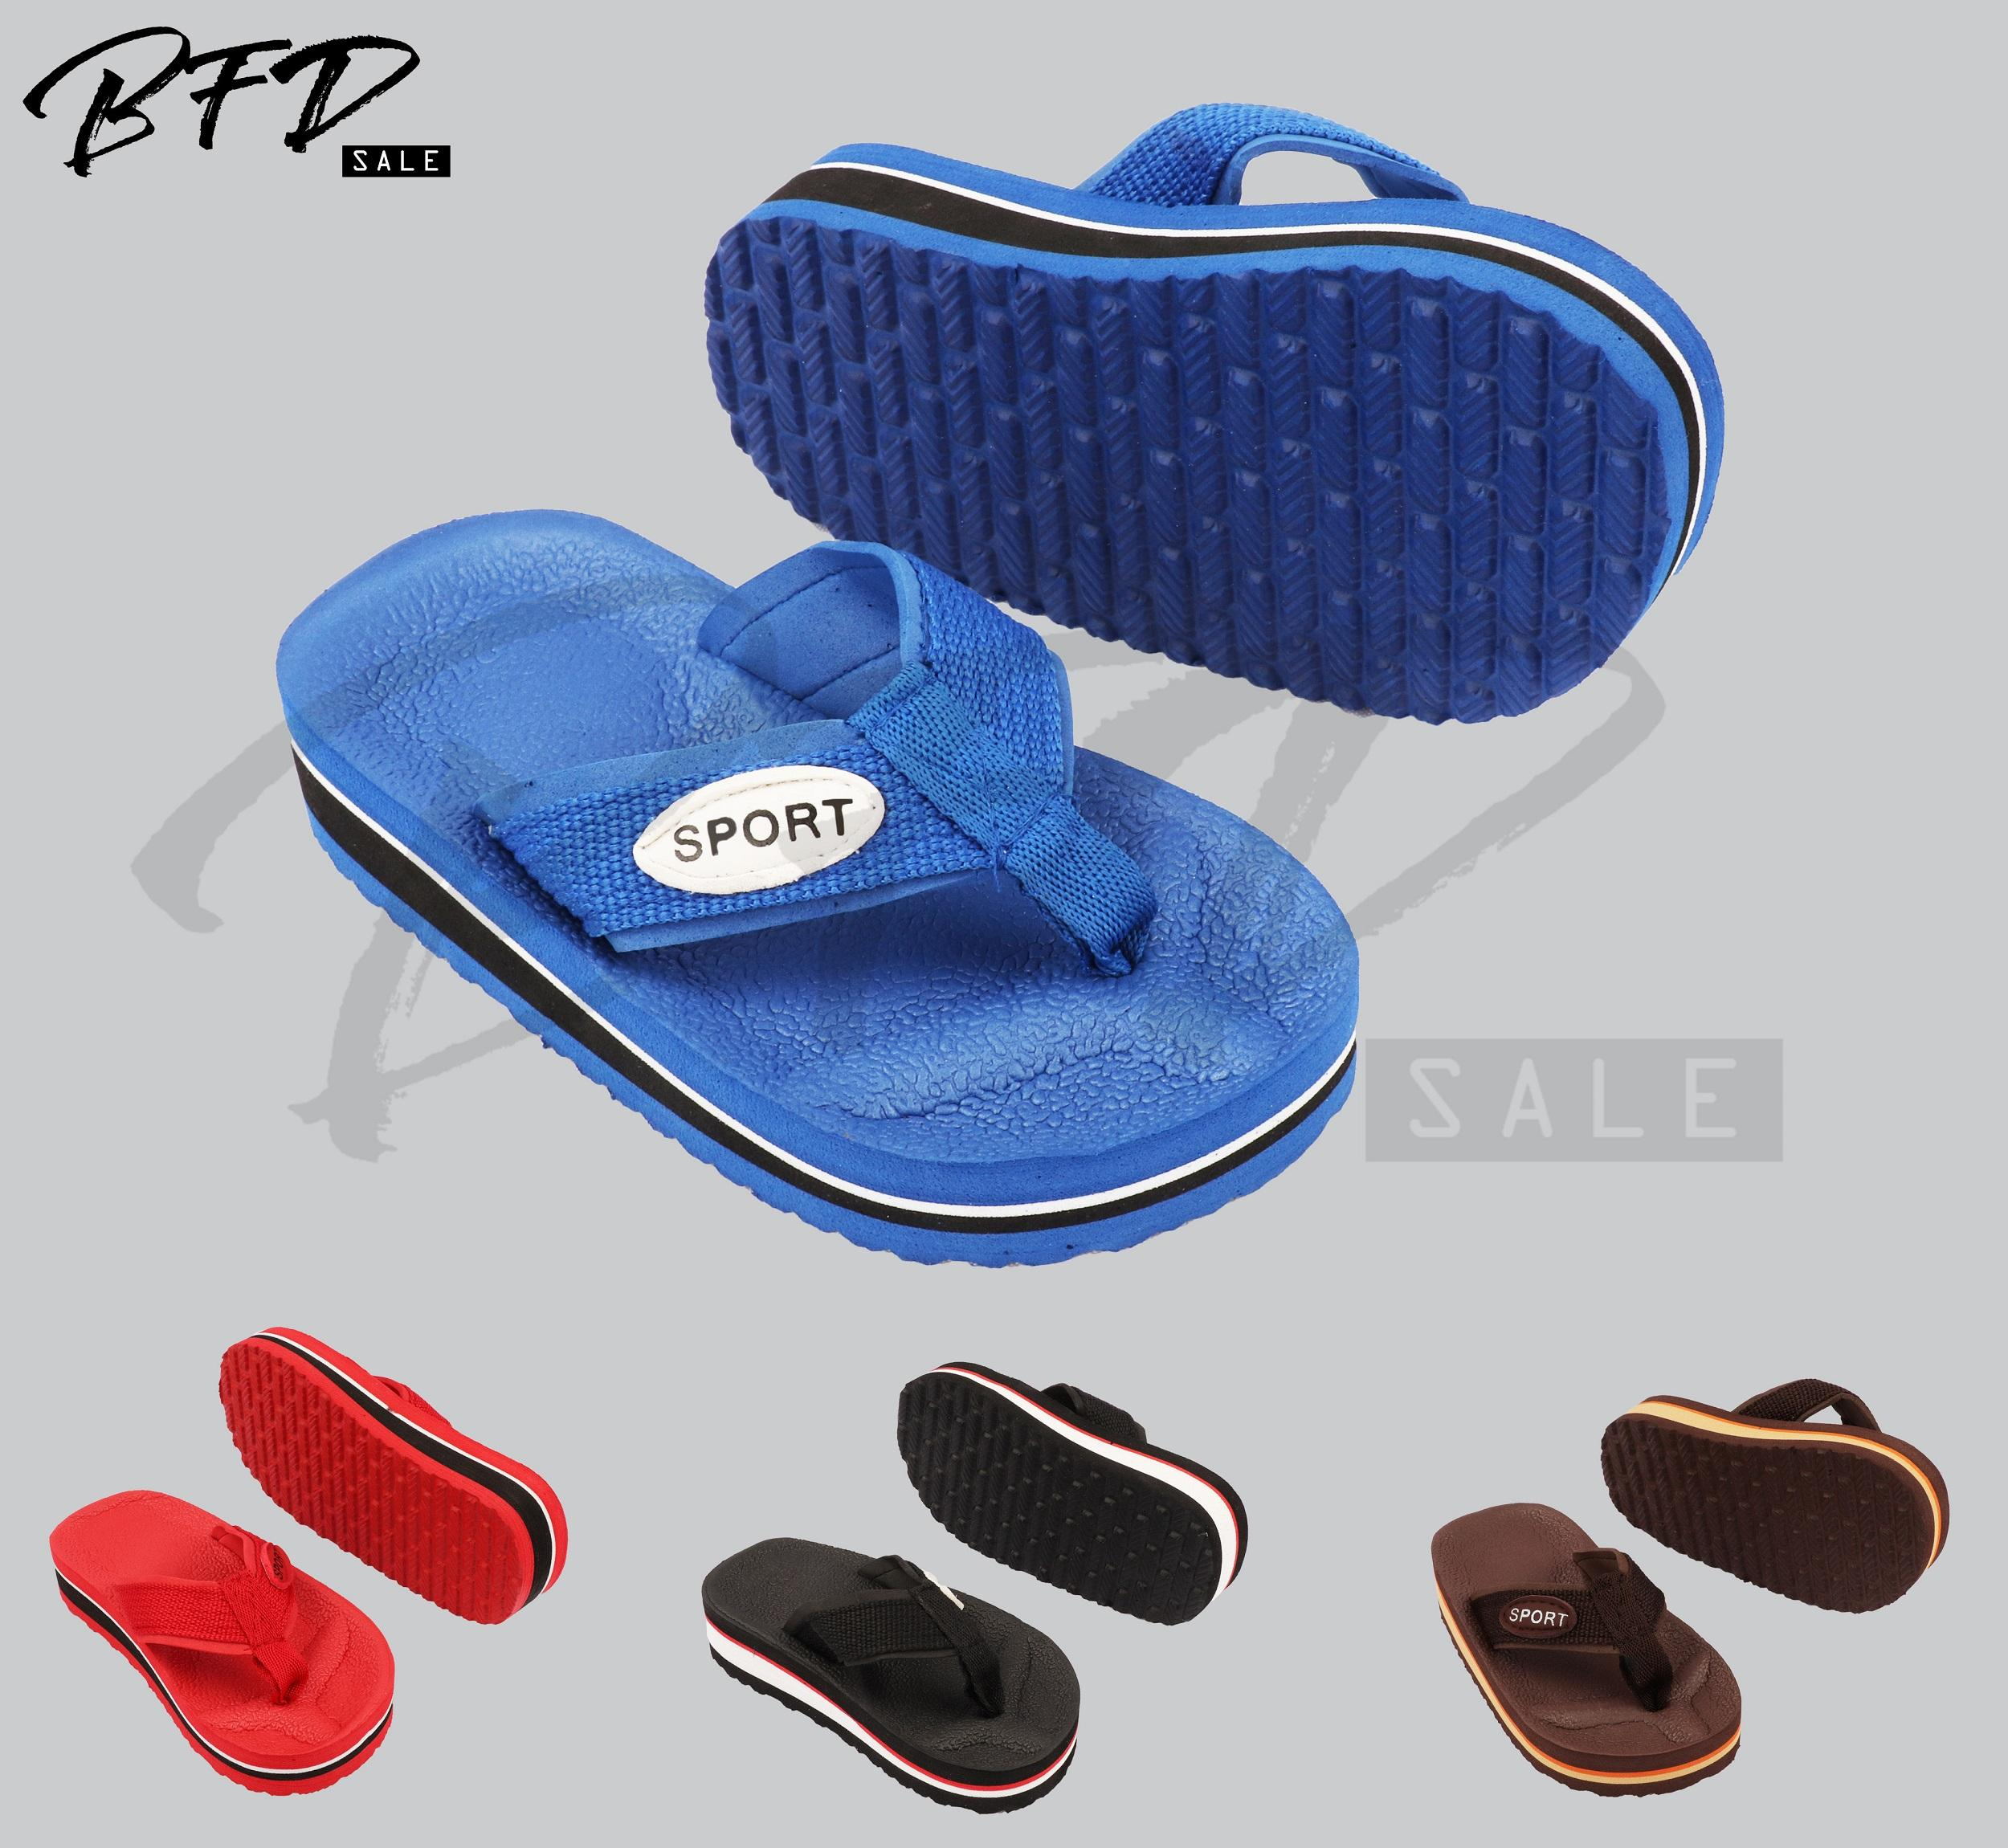 Big Sale Kids Boys Slipper Kids Flip Flops 519d-1 By Direct Factory Sales.